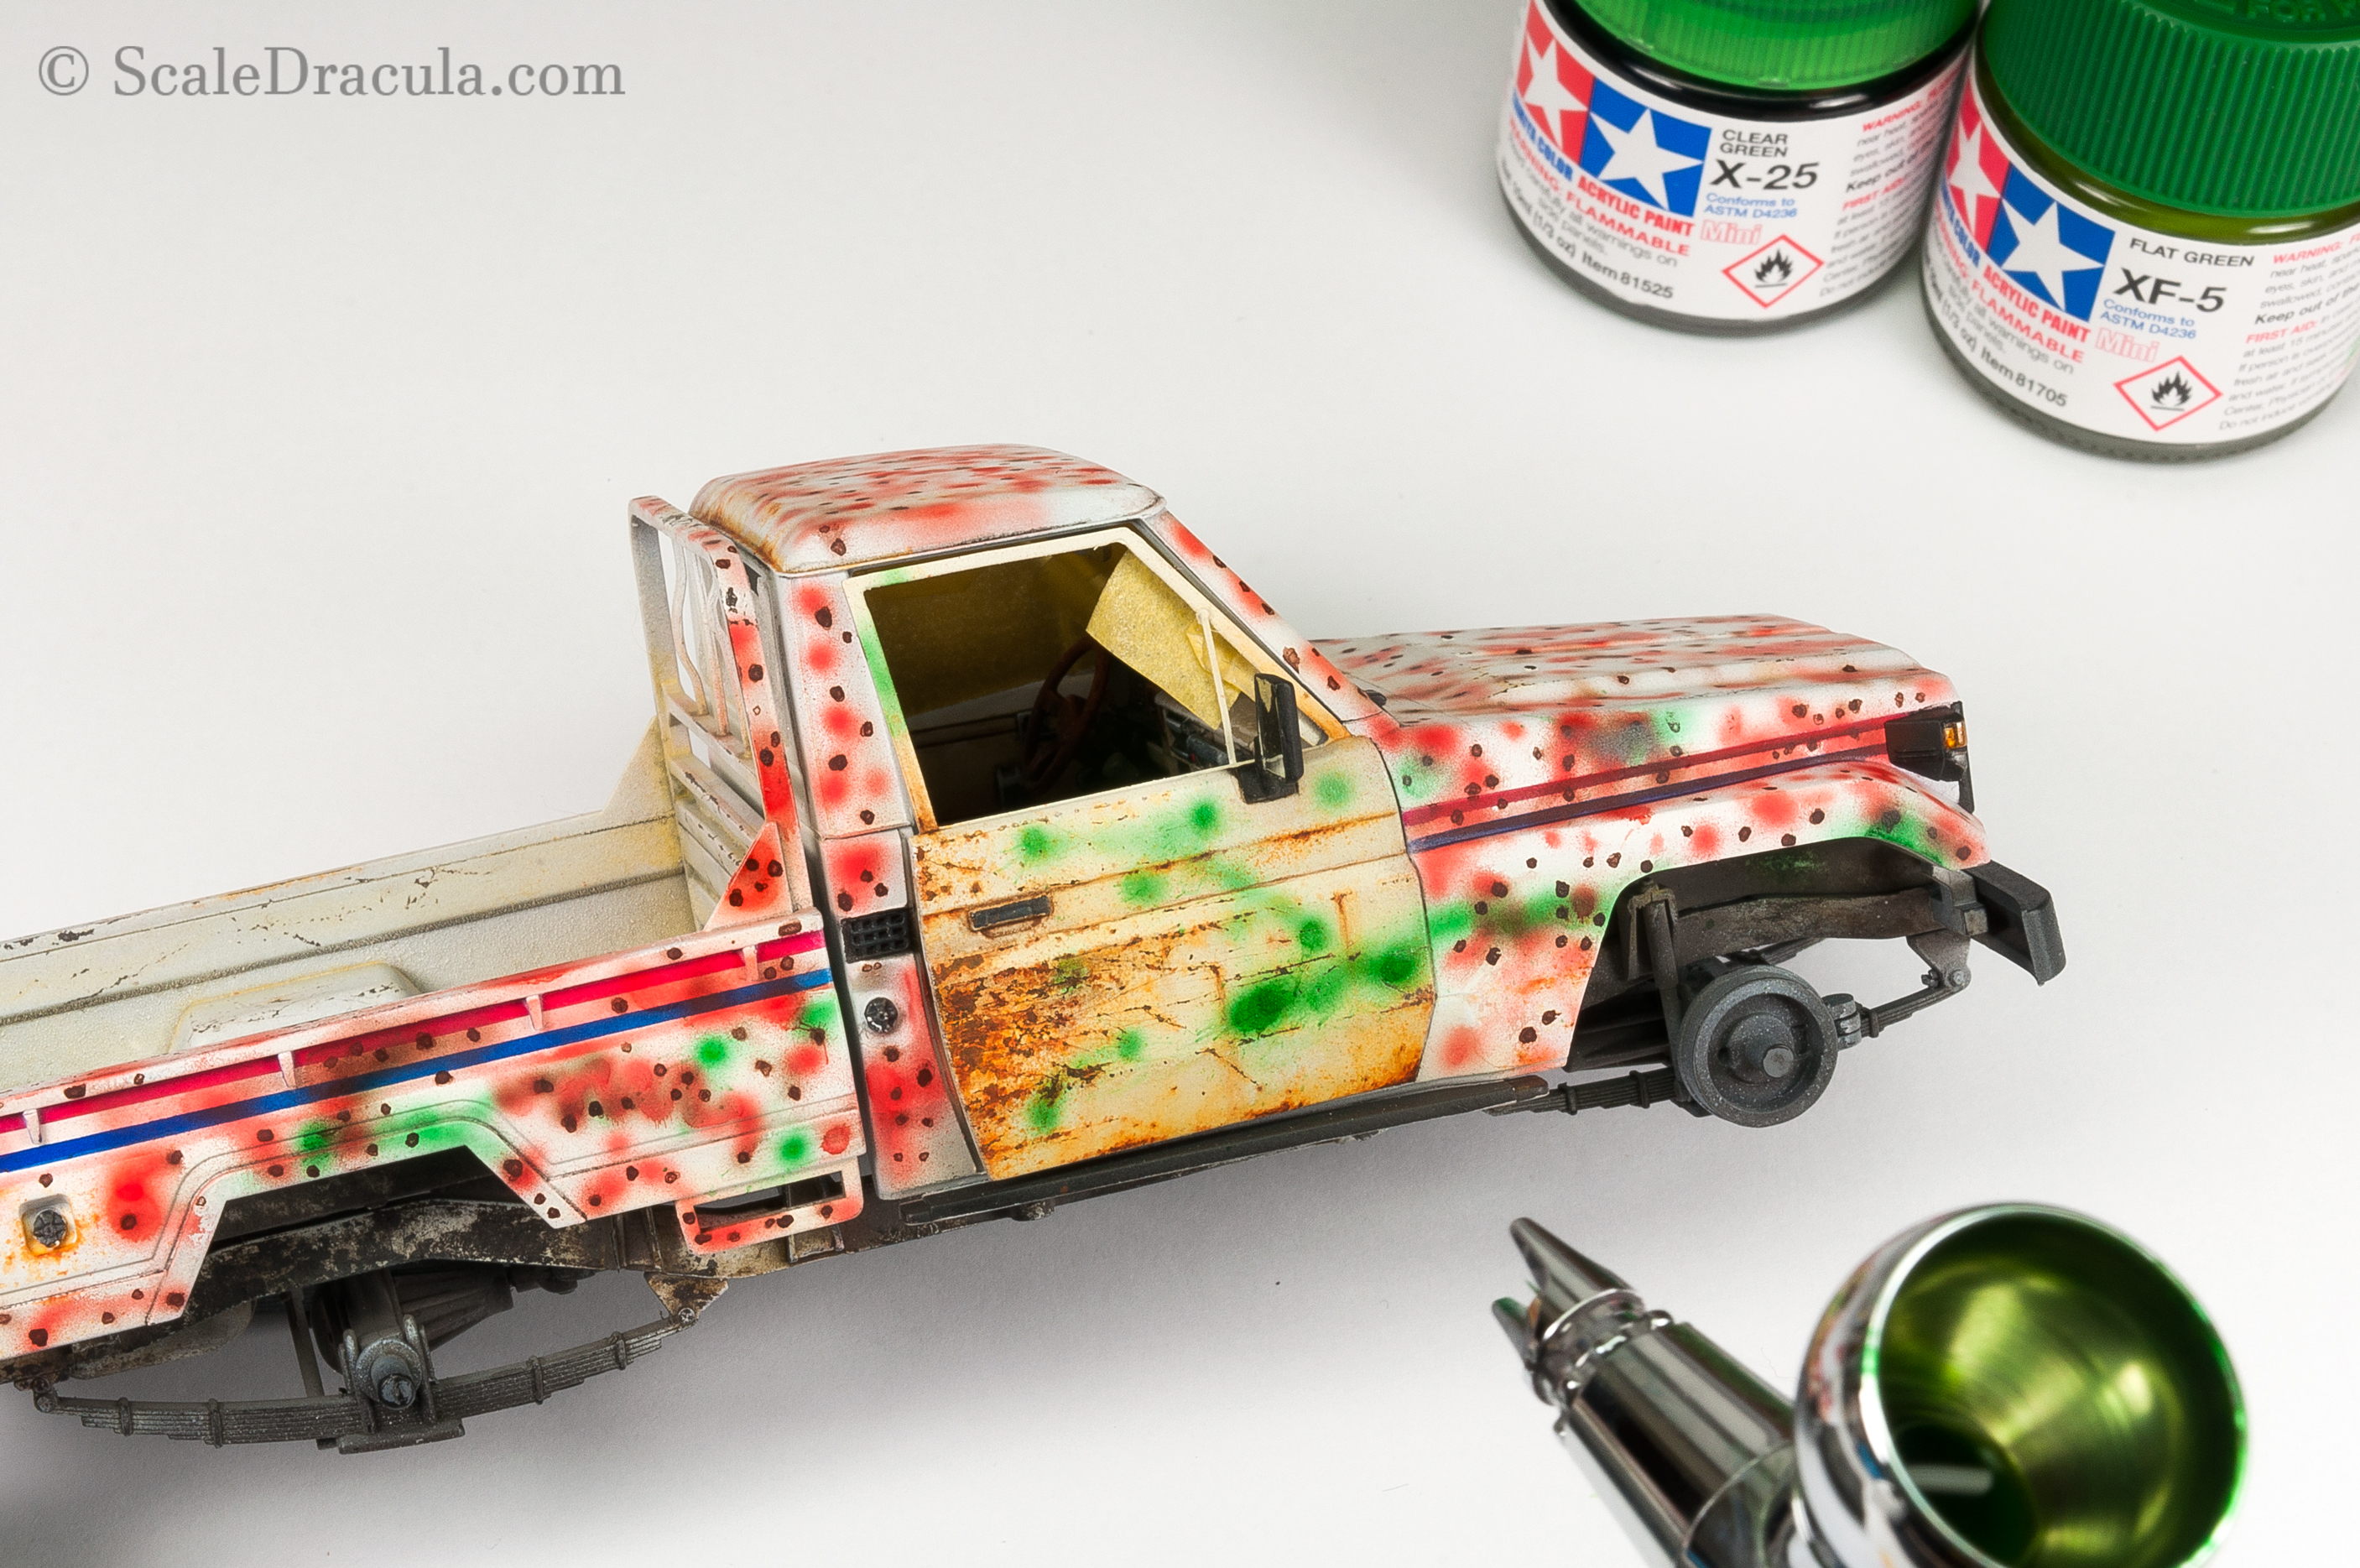 Painting the improvised camouflage with Mission Model paints, Toyota technical by Meng